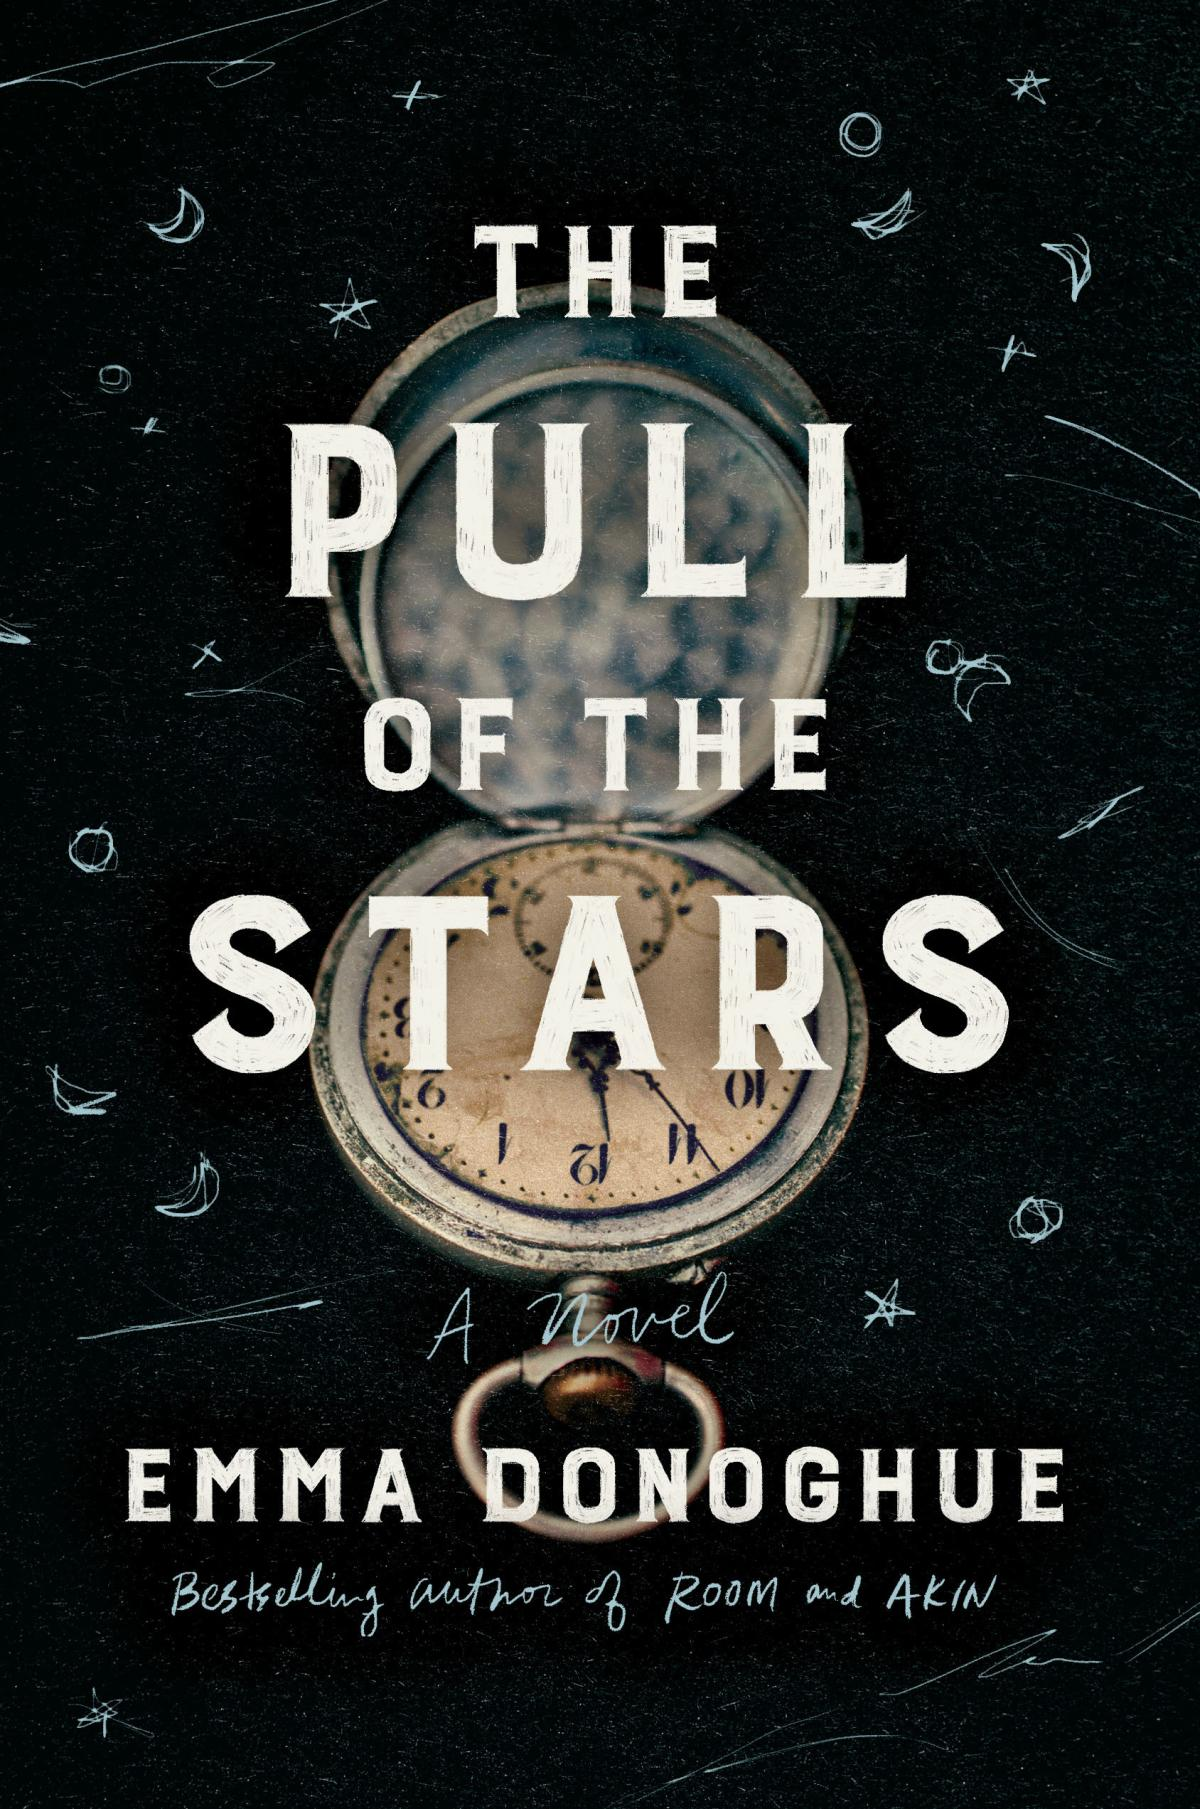 The Pull of the Stars, by Emma Donoghue